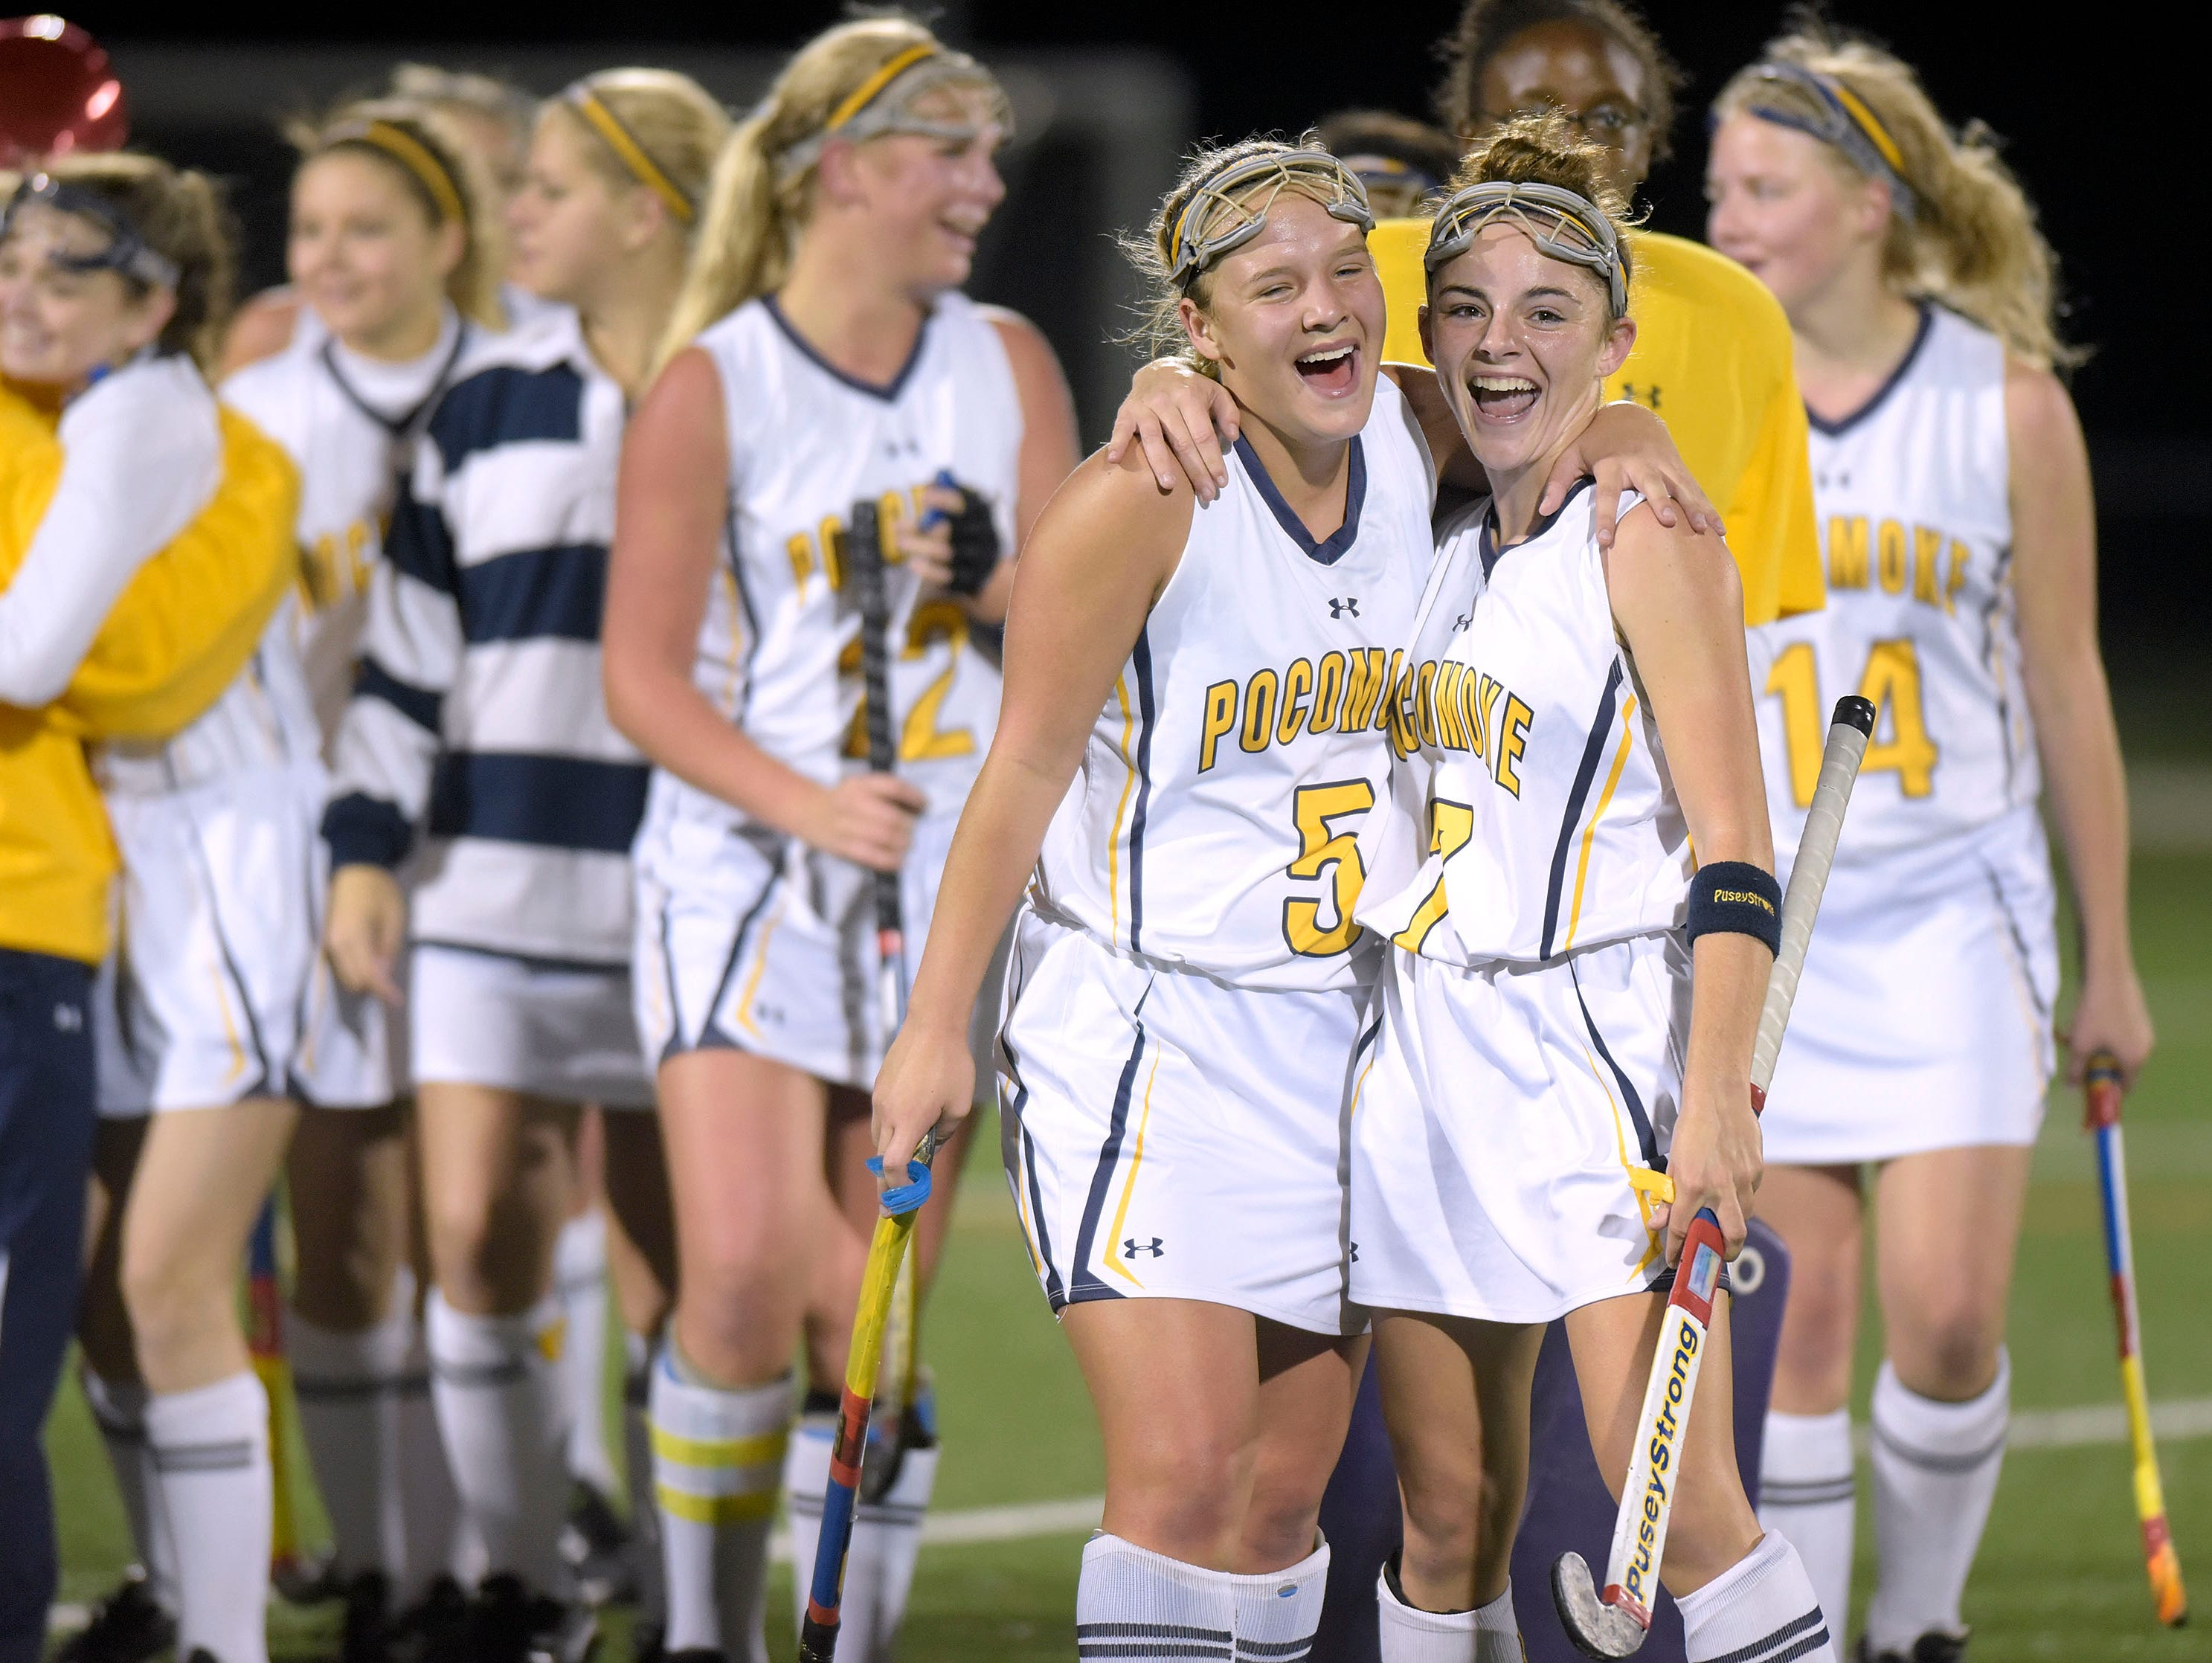 Pocomoke's McKenzie Mitchell, #5, and Peyton Becker, #7, celebrate after the team's 3-0 win against Manchester Valley in a Class 1A state semifinal field hockey game, Wednesday, Nov. 11, 2015 in Burtonsville.